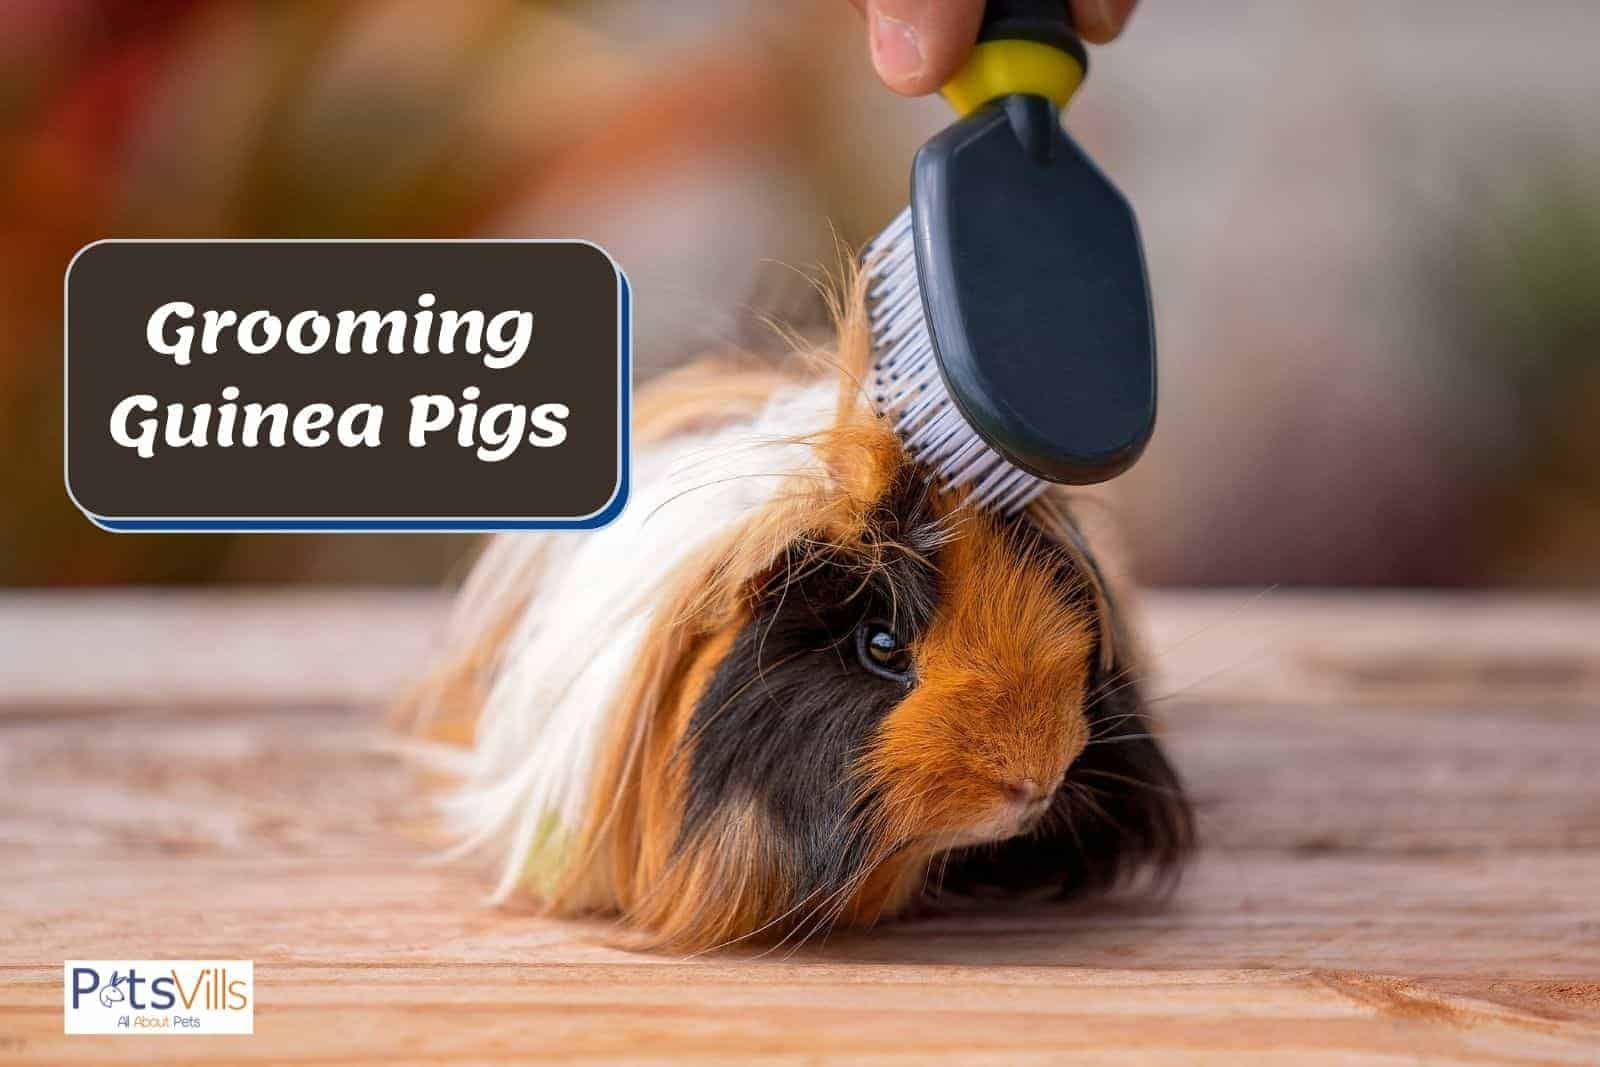 properly grooming guinea pigs using a tiny brush